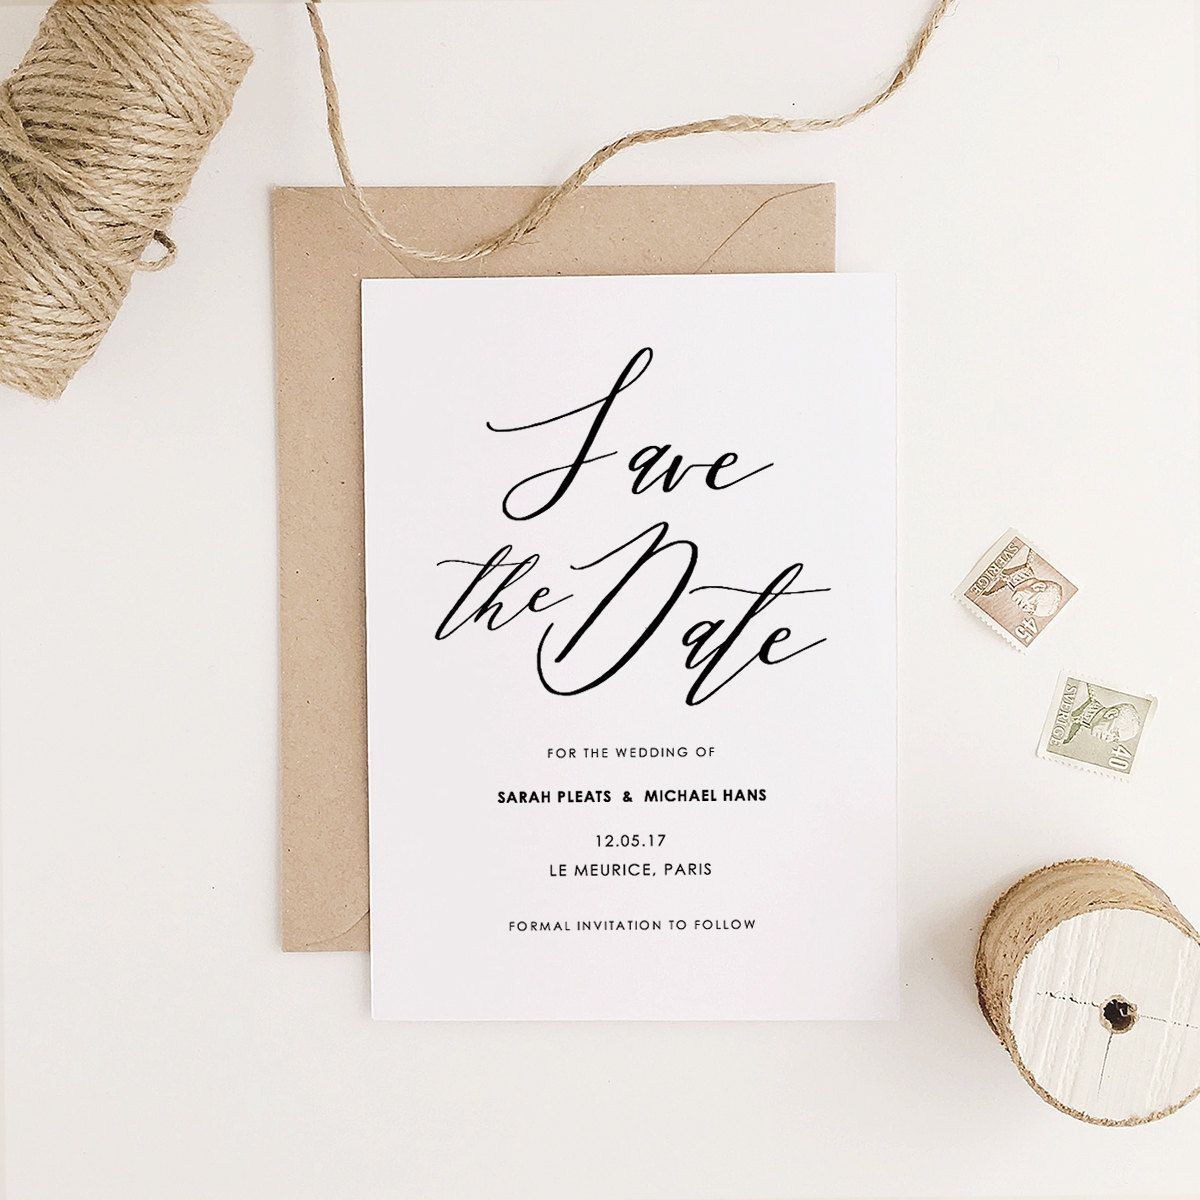 004 Striking Save The Date Template Word Highest Quality  Free Customizable For Holiday PartyFull